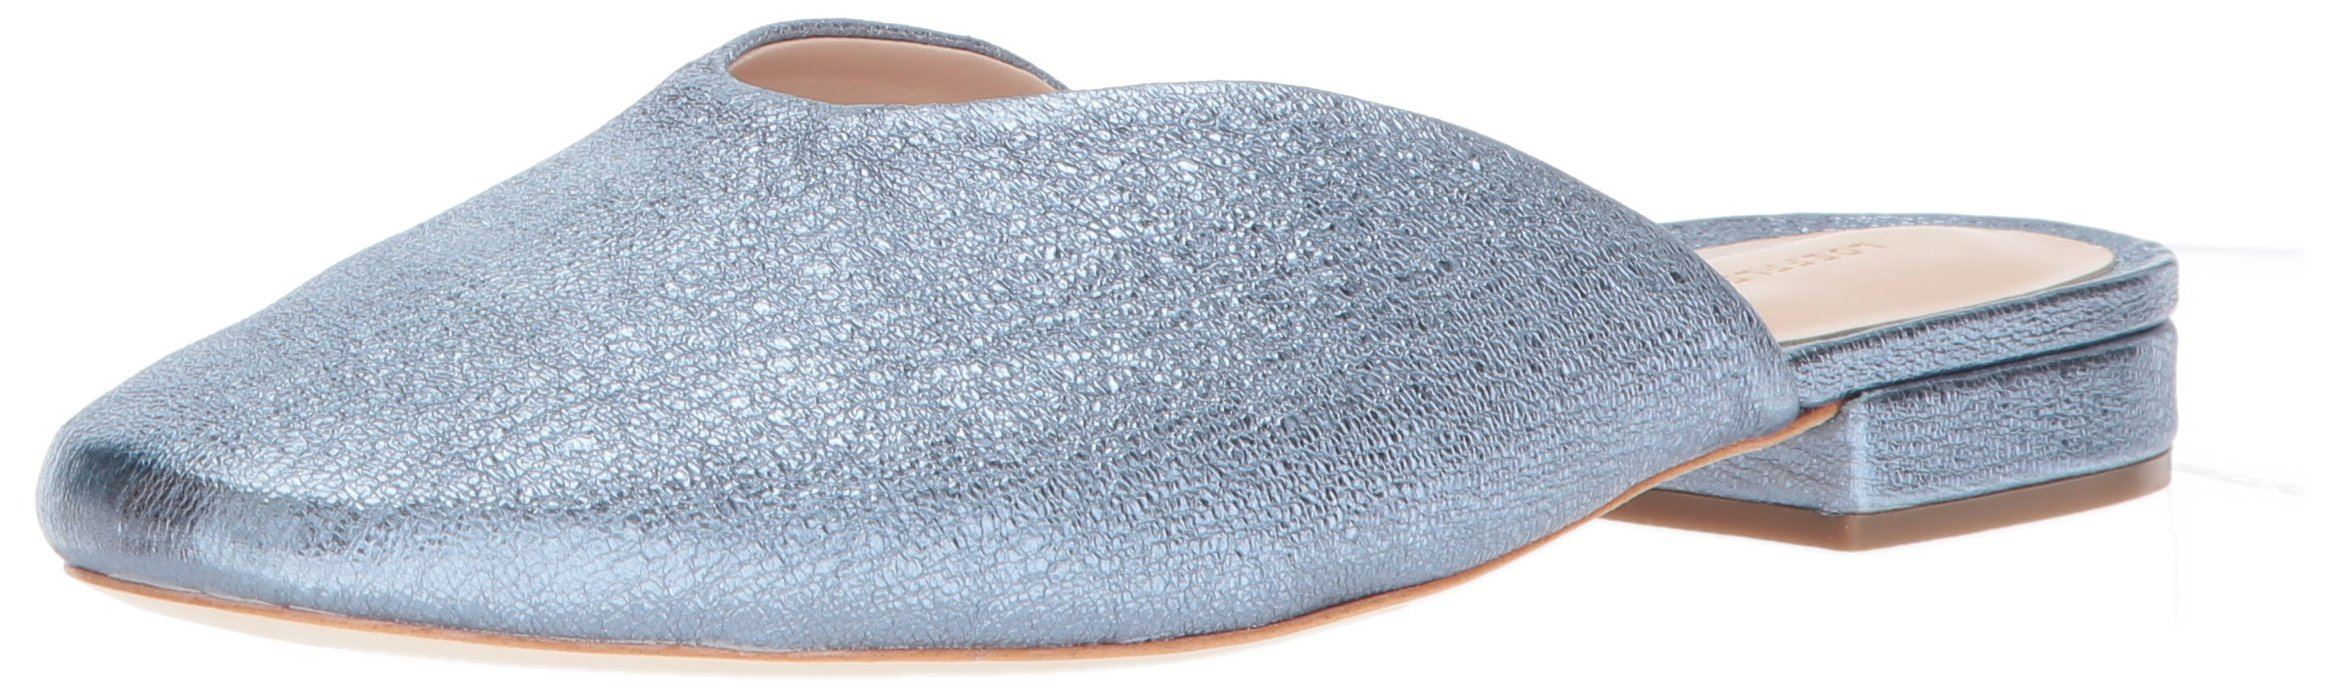 Loeffler Randall Women's Quin Driving Style Loafer, Splash, 5 M US